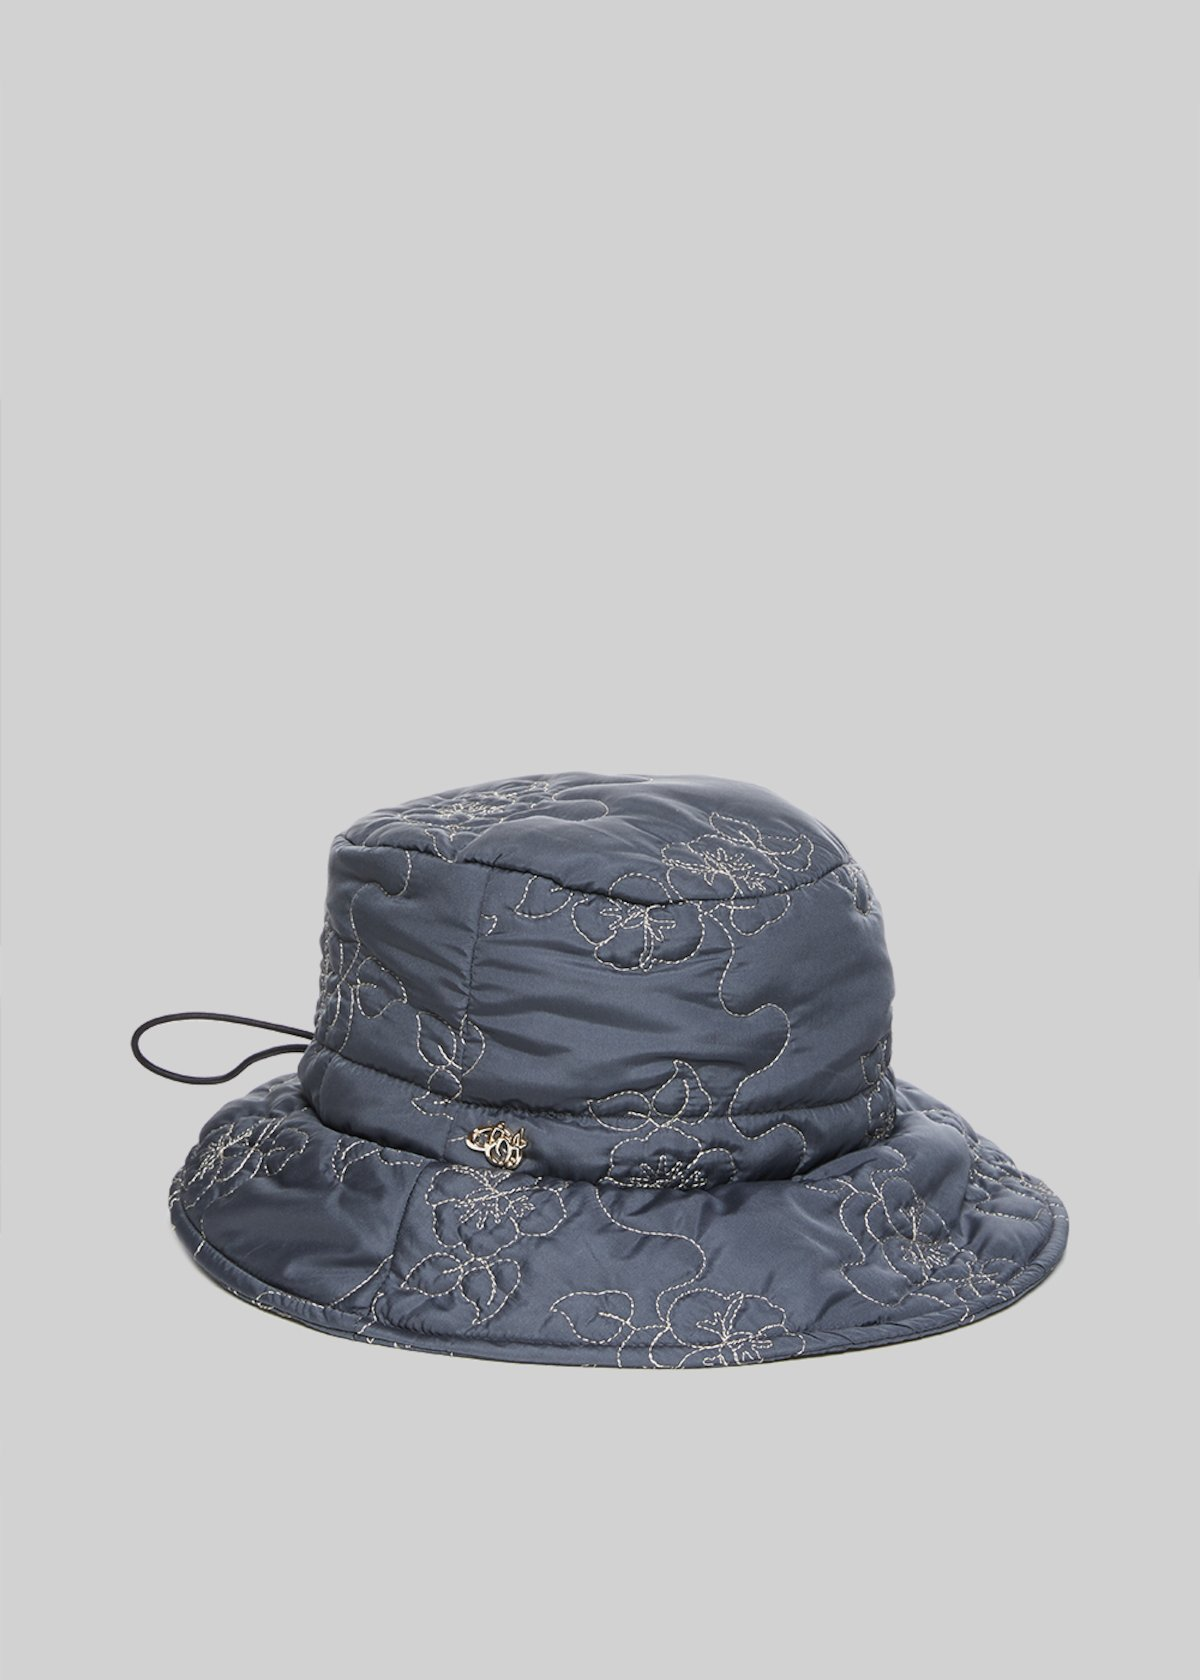 Cookie hat with drawstring on the back